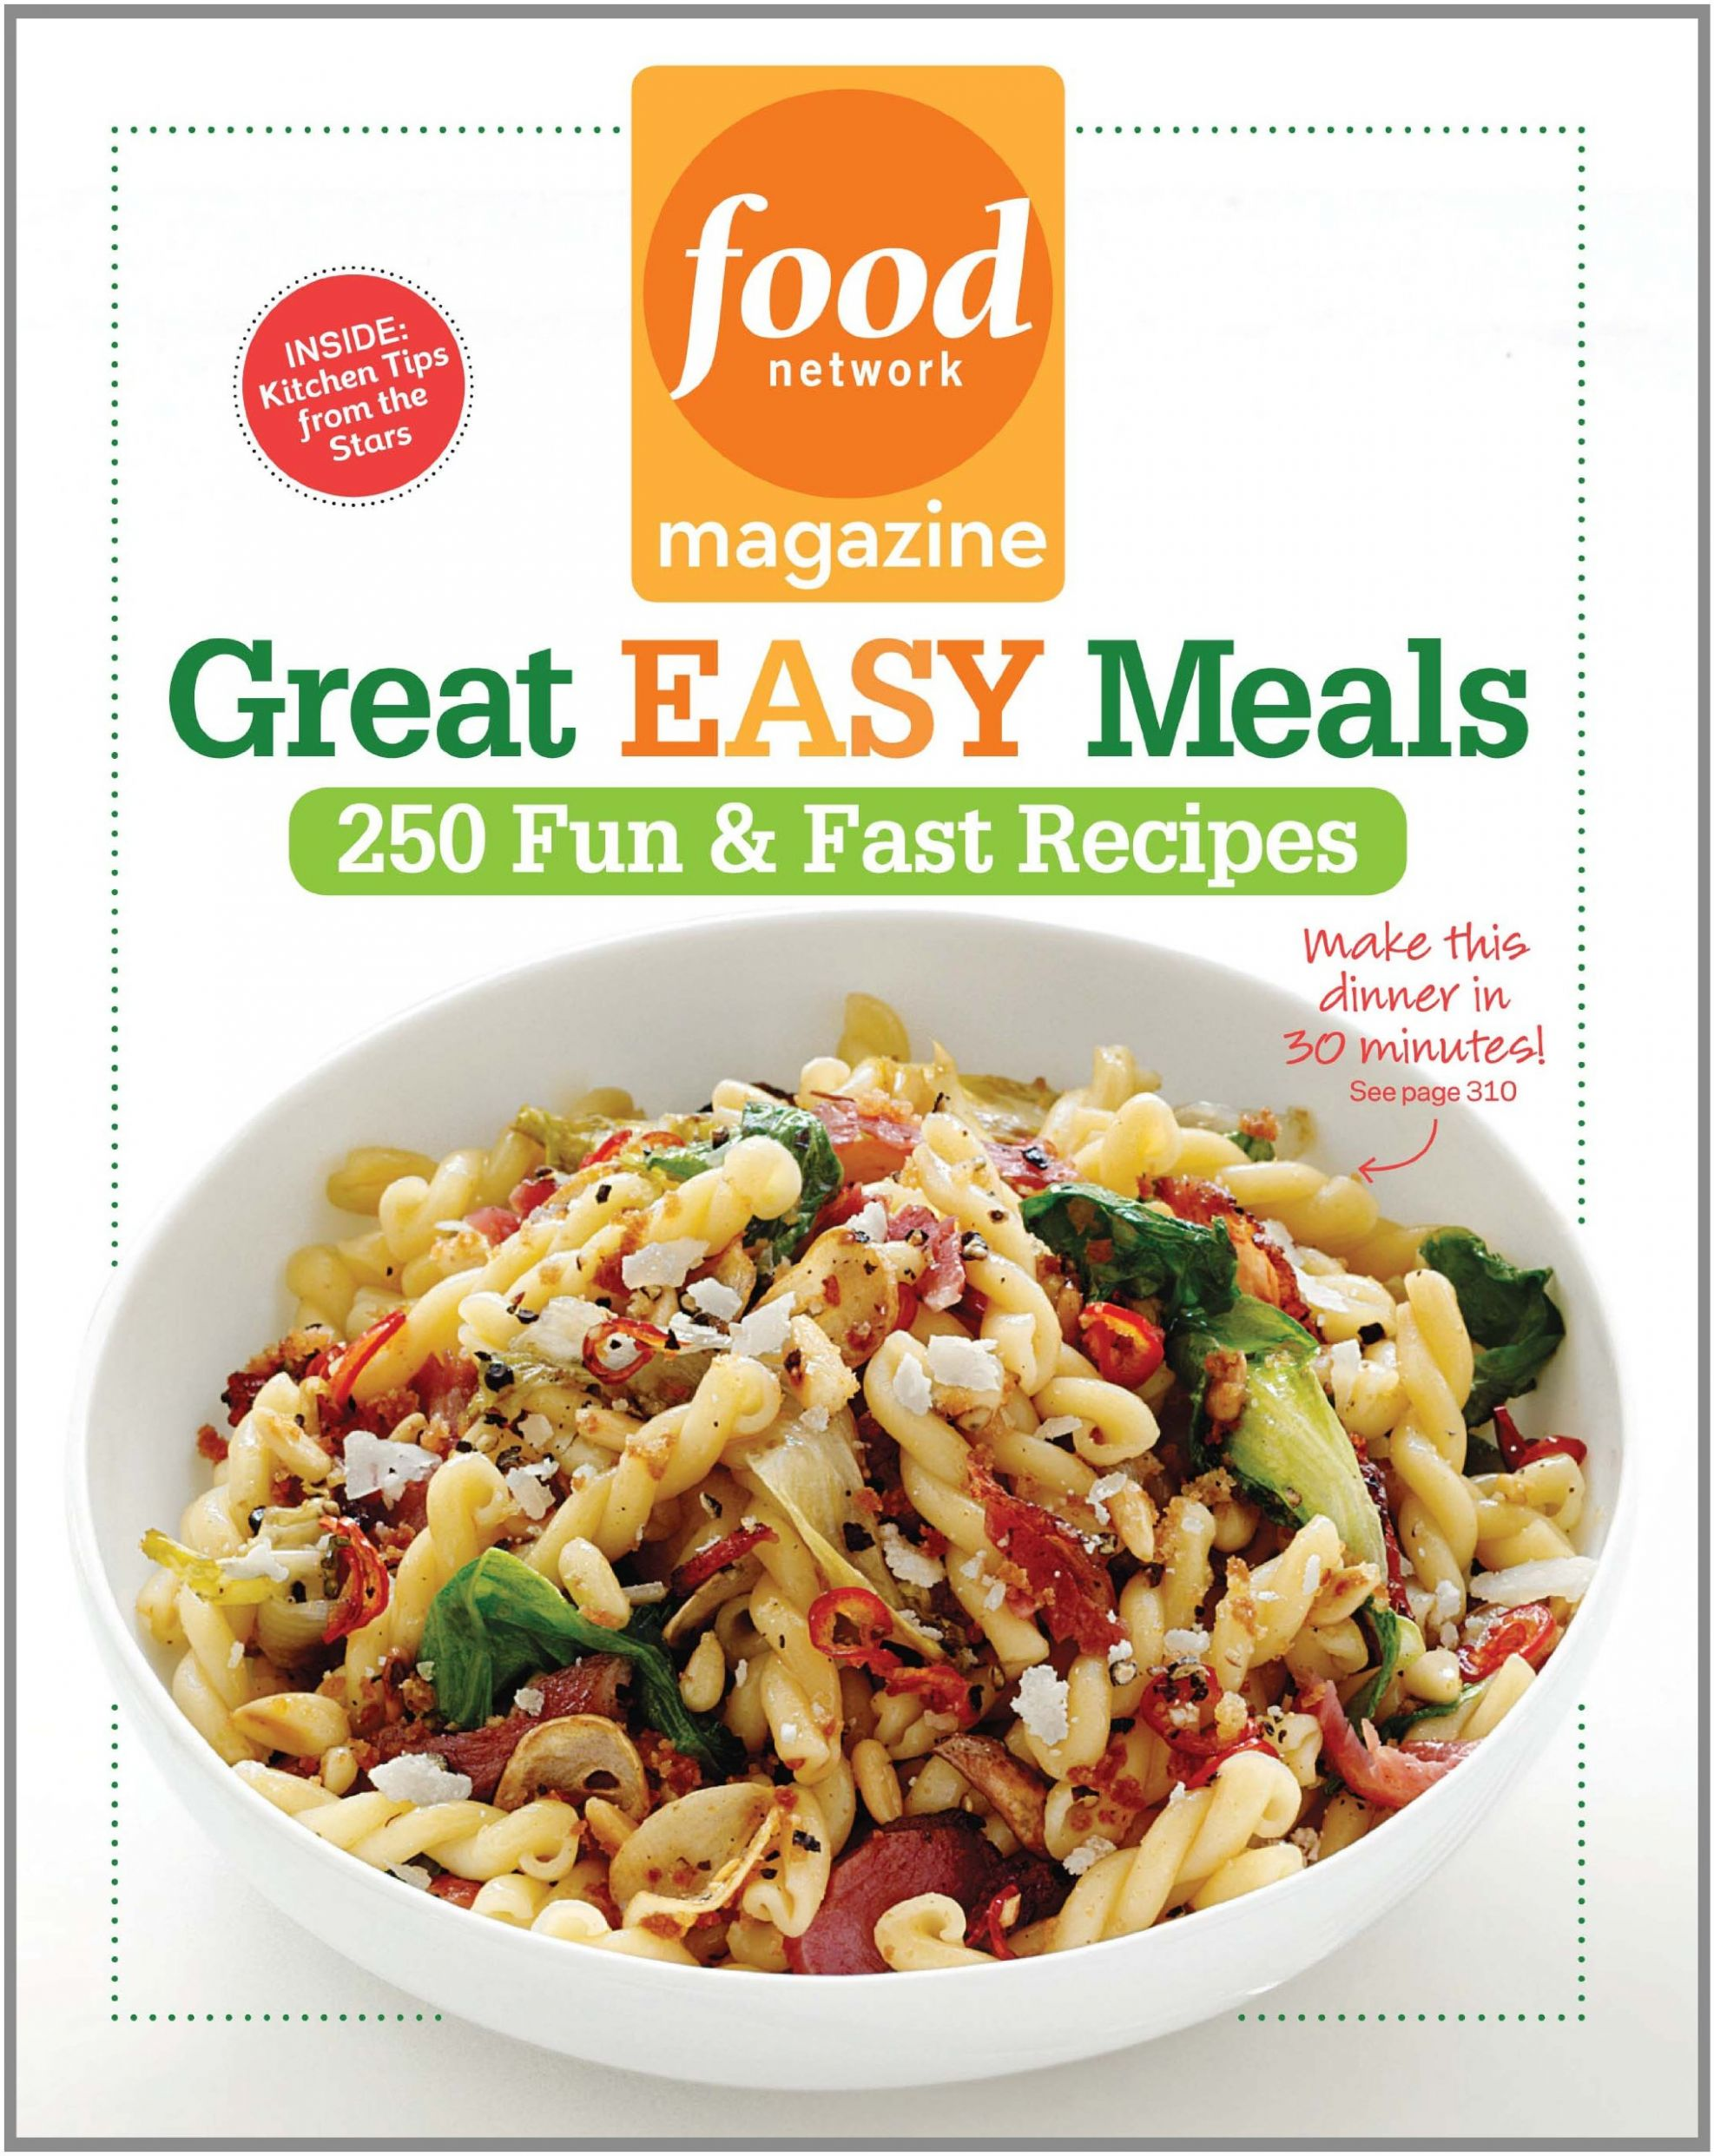 Food Network Magazine Great Easy Meals: 8 Fun & Fast Recipes ..